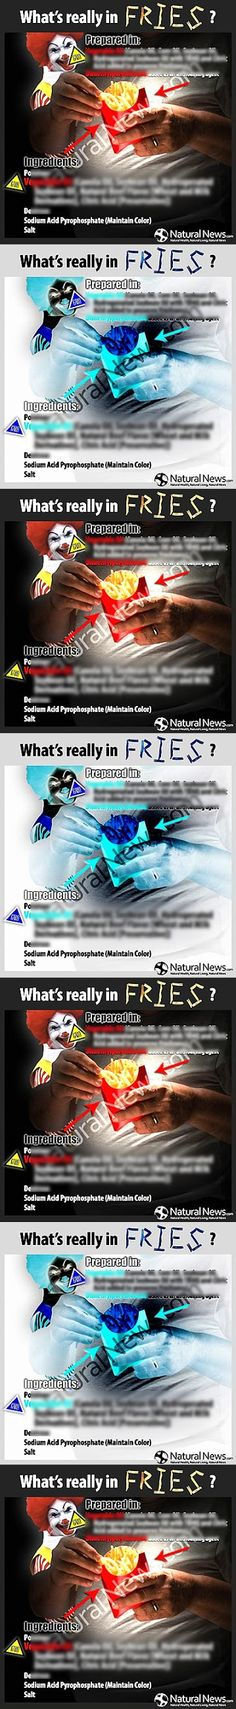 Visit Site For Info Without The Blur! ---- FIND OUT WHAT'S REALLY IN FRENCH FRIES!............................................................................................................................................ --- PLEASE PIN THIS TO YOUR BEST BOARD...... It's definitely worth it!!!